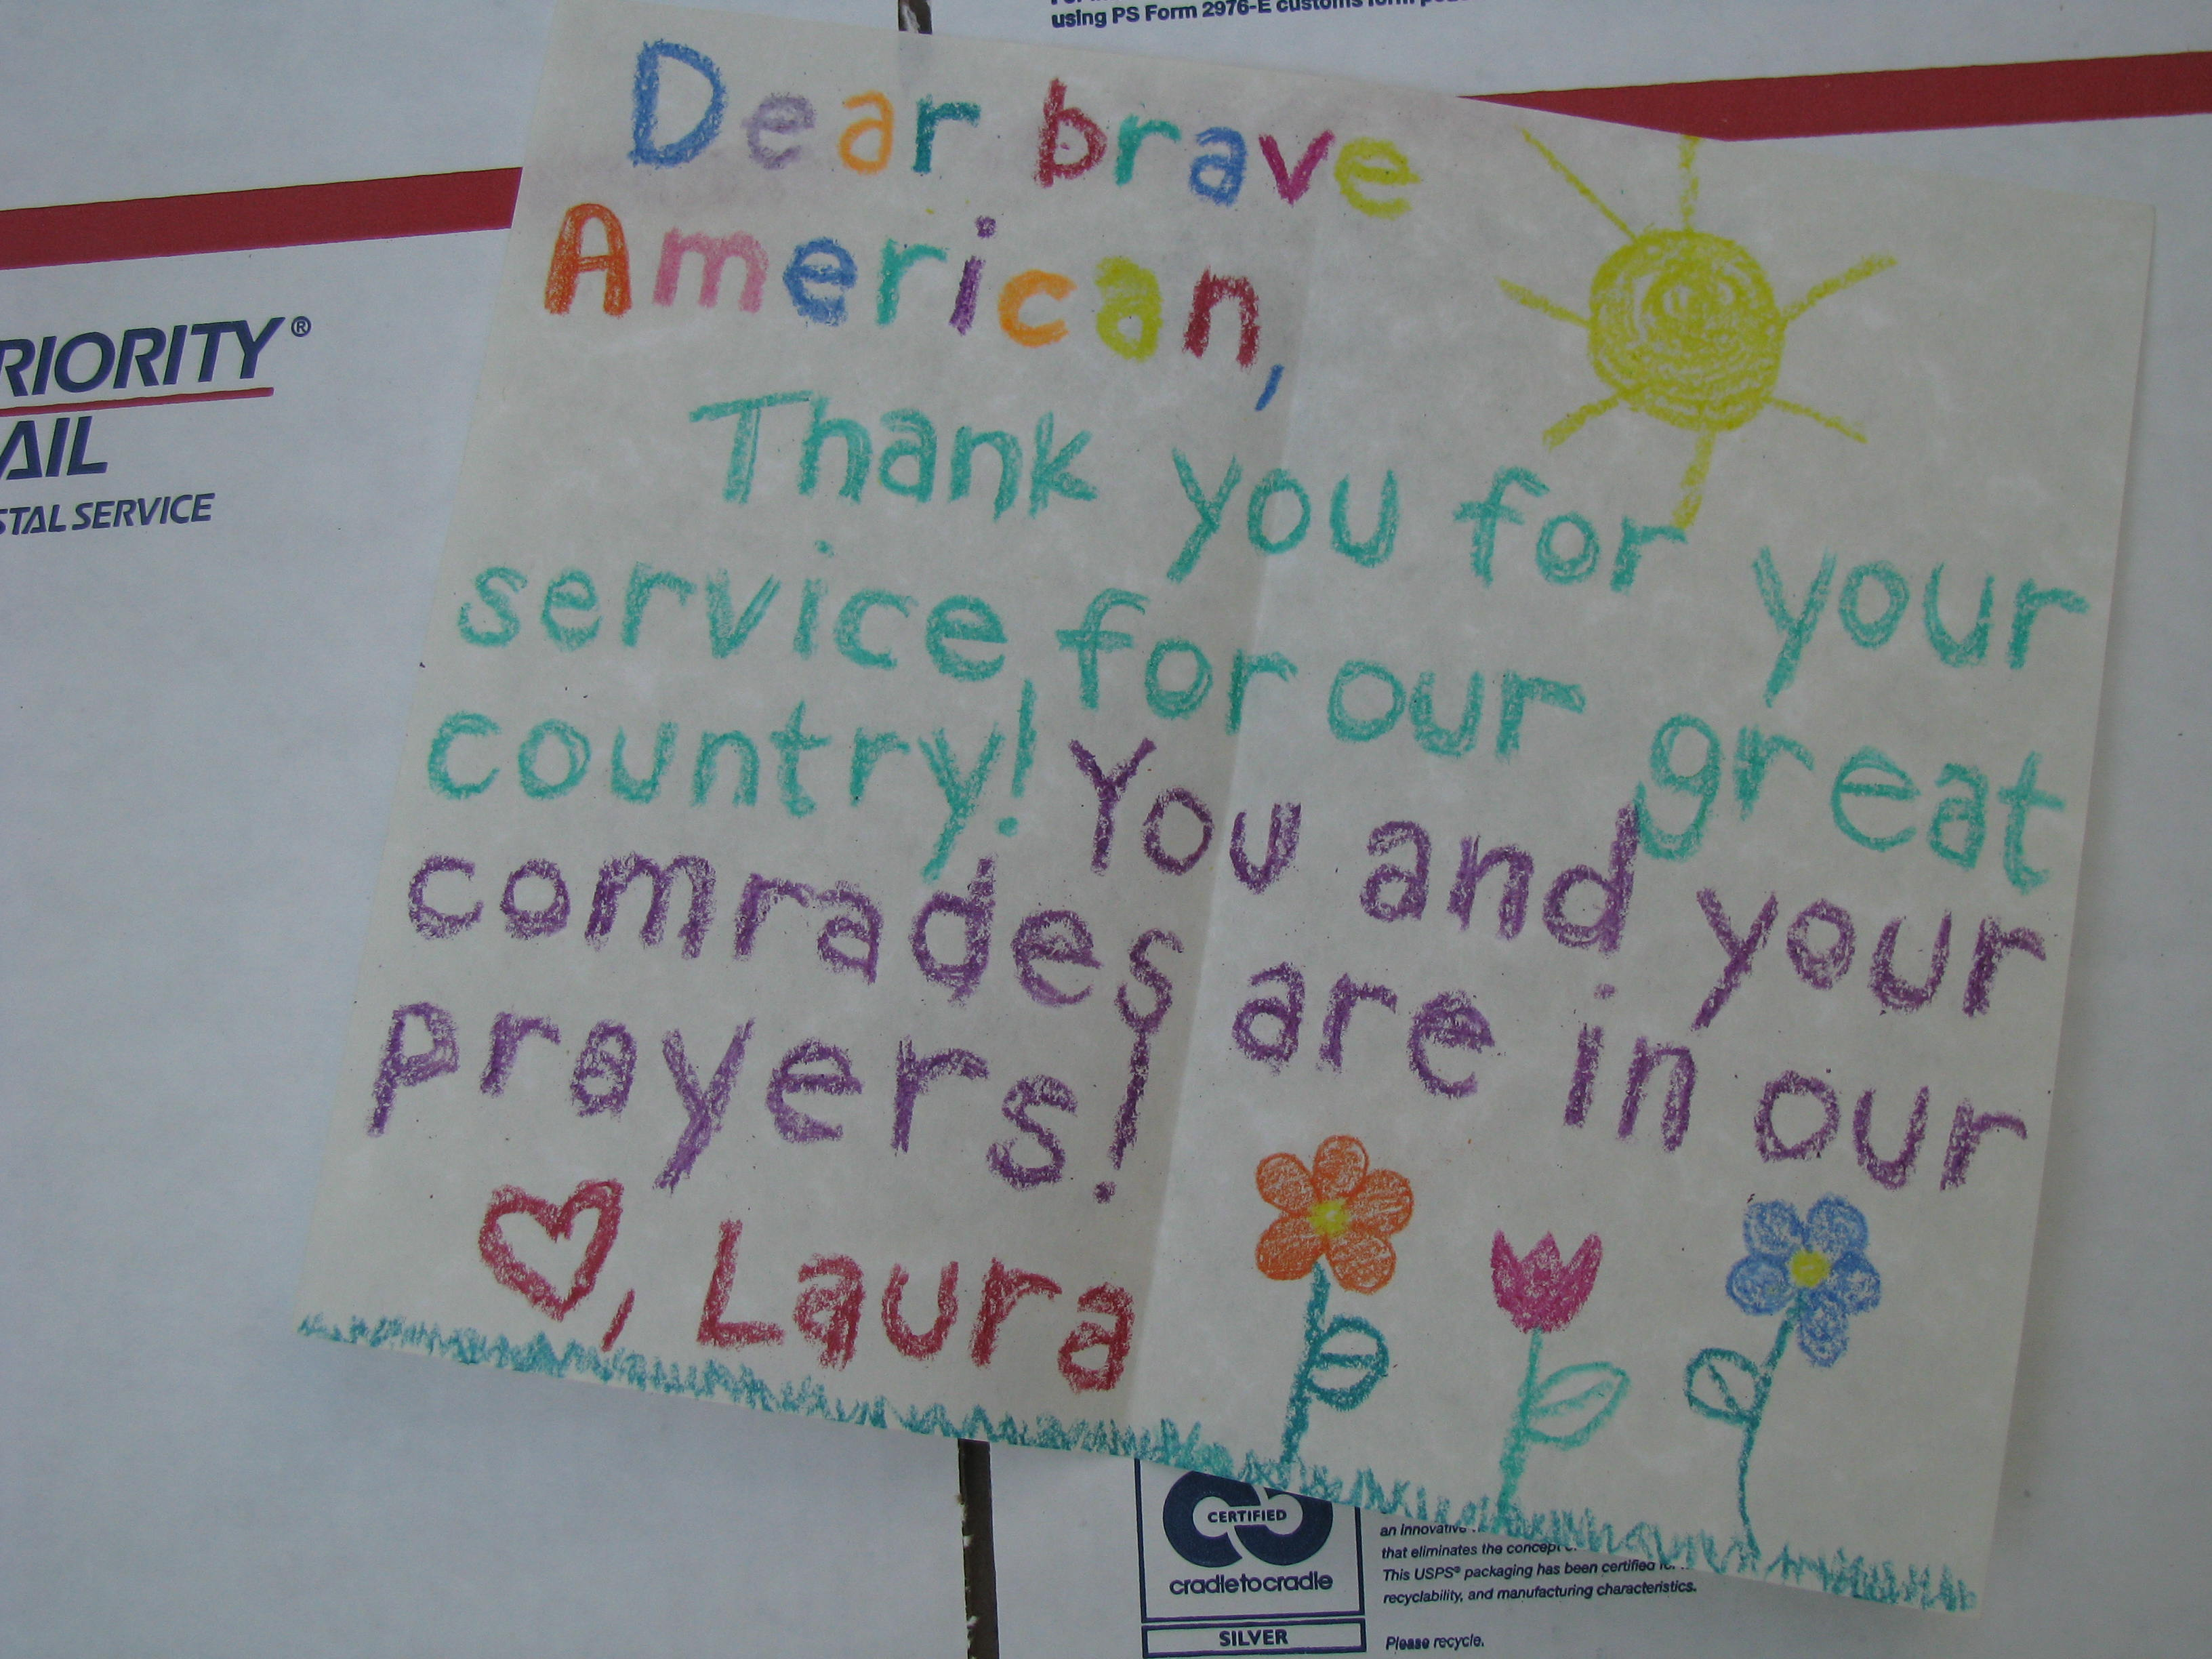 operation gratitudecalifornia army national guard 17330 victory boulevard van nuys ca 91406 attn letter writing program